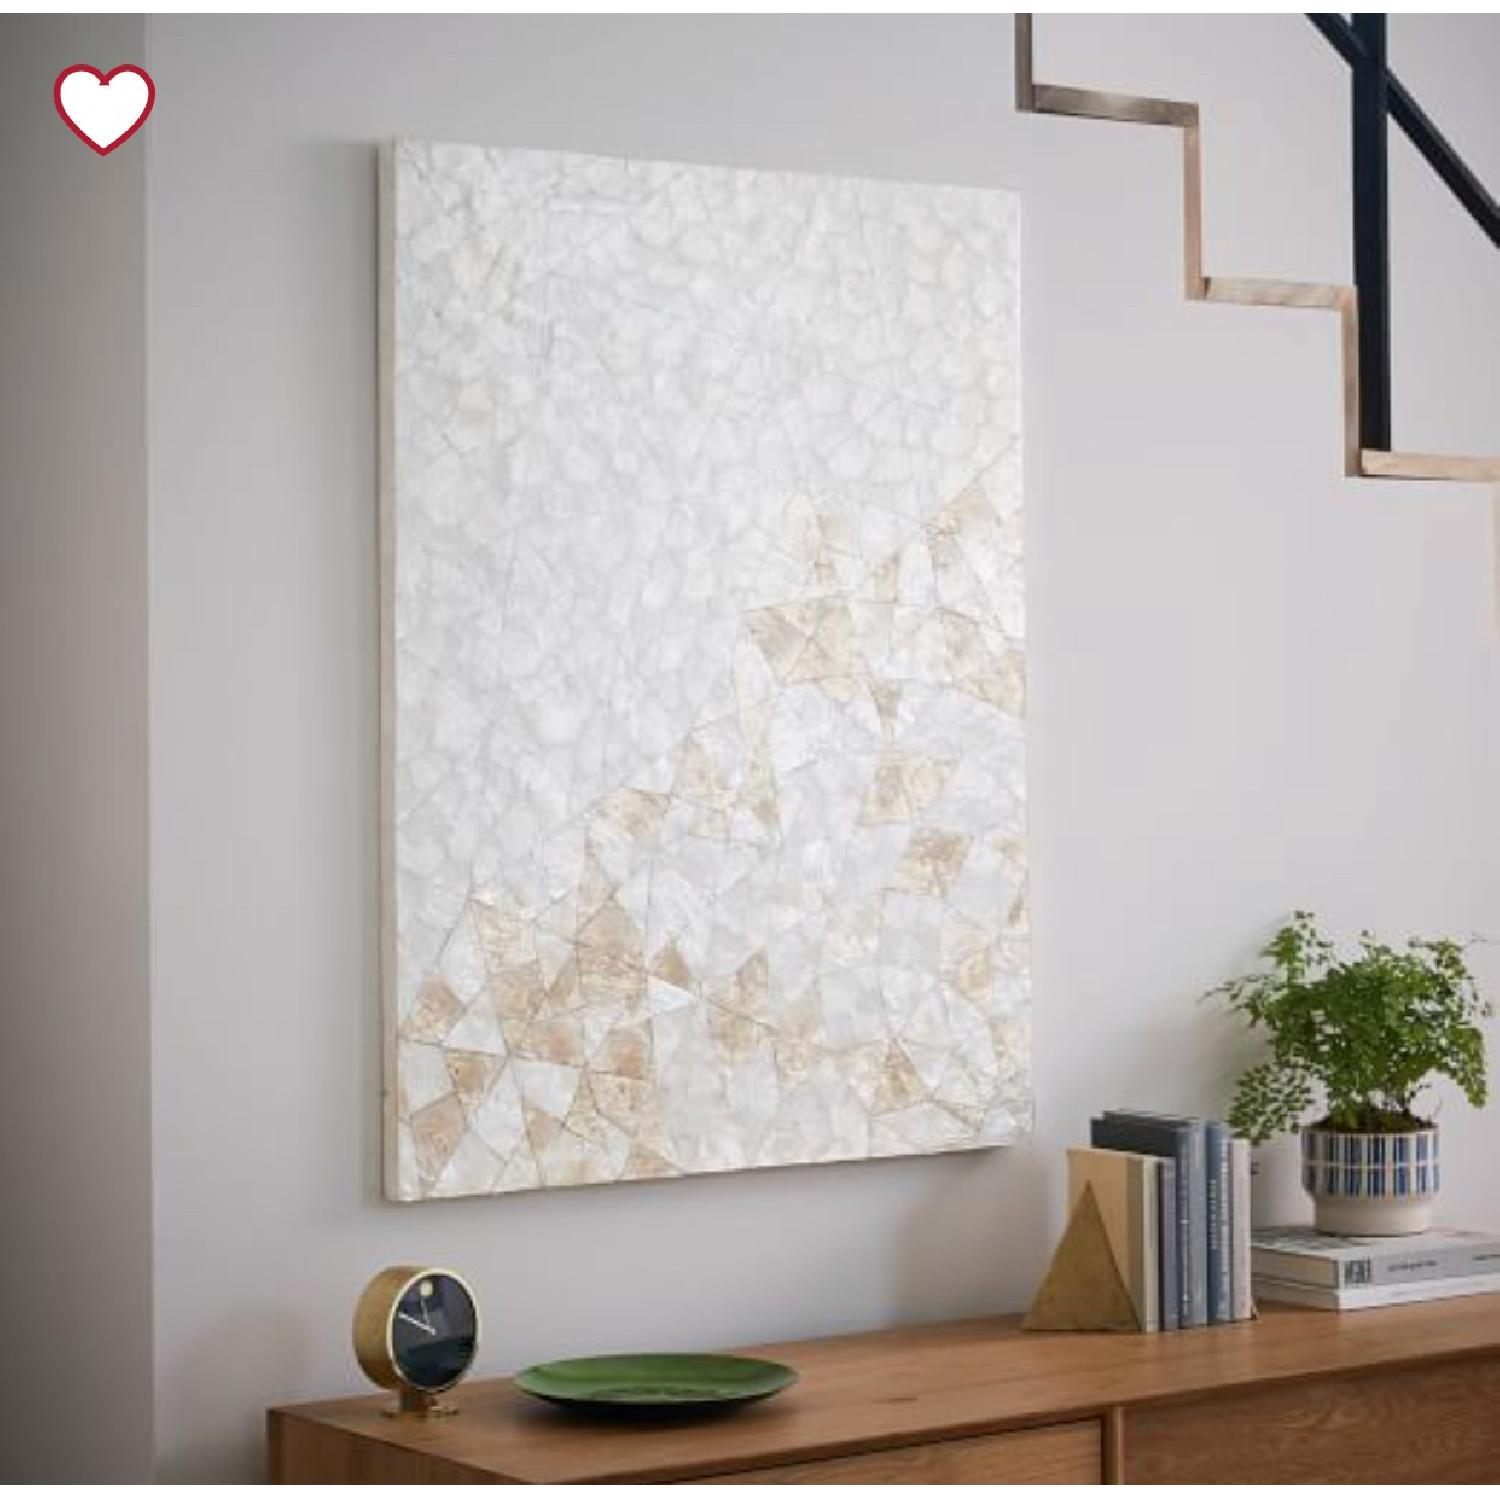 West Elm Capiz Wall Art - Crystal Formation-0